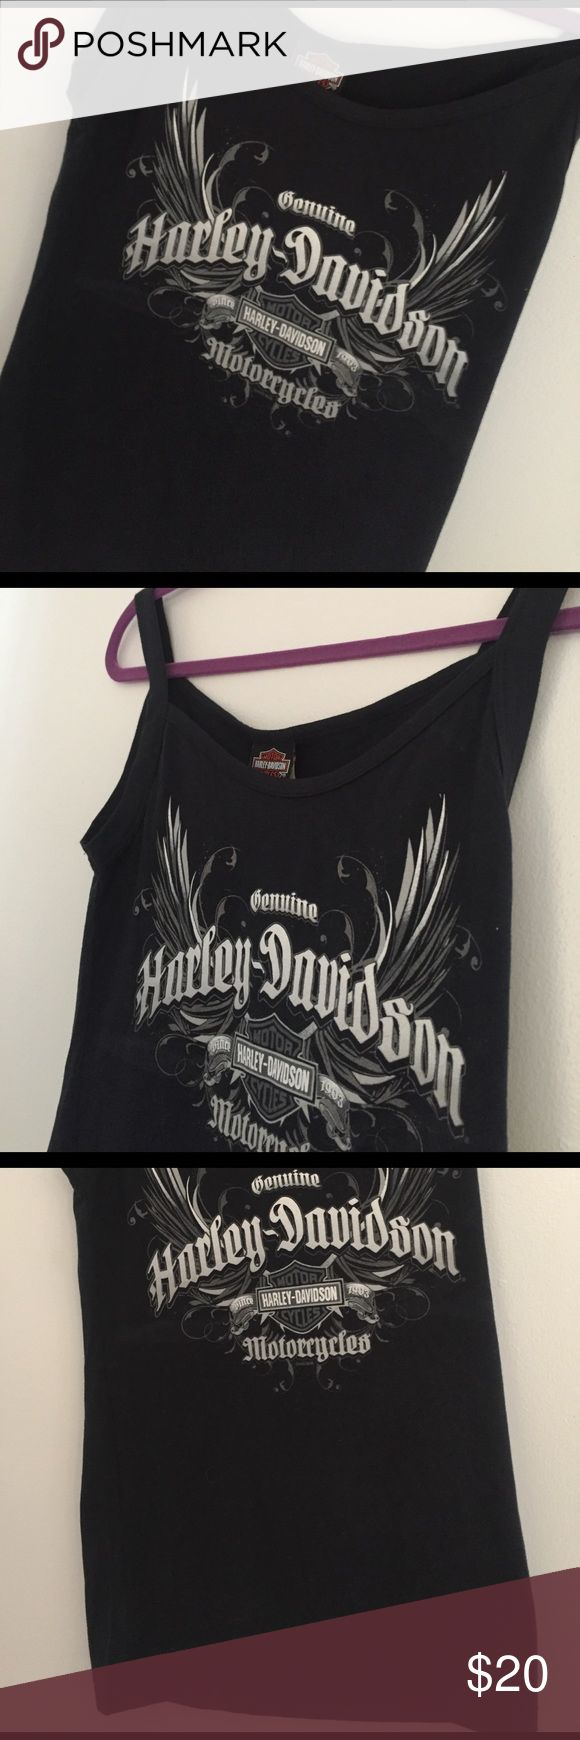 💯 AUTHENTIC HARLEY TANK NWT FIRM Harley Ex BF didn't even know my size. This is Ladies Large. Reflective wings. Brand new with tags. Bought on sale as shown for $33. Harley-Davidson Tops Tank Tops